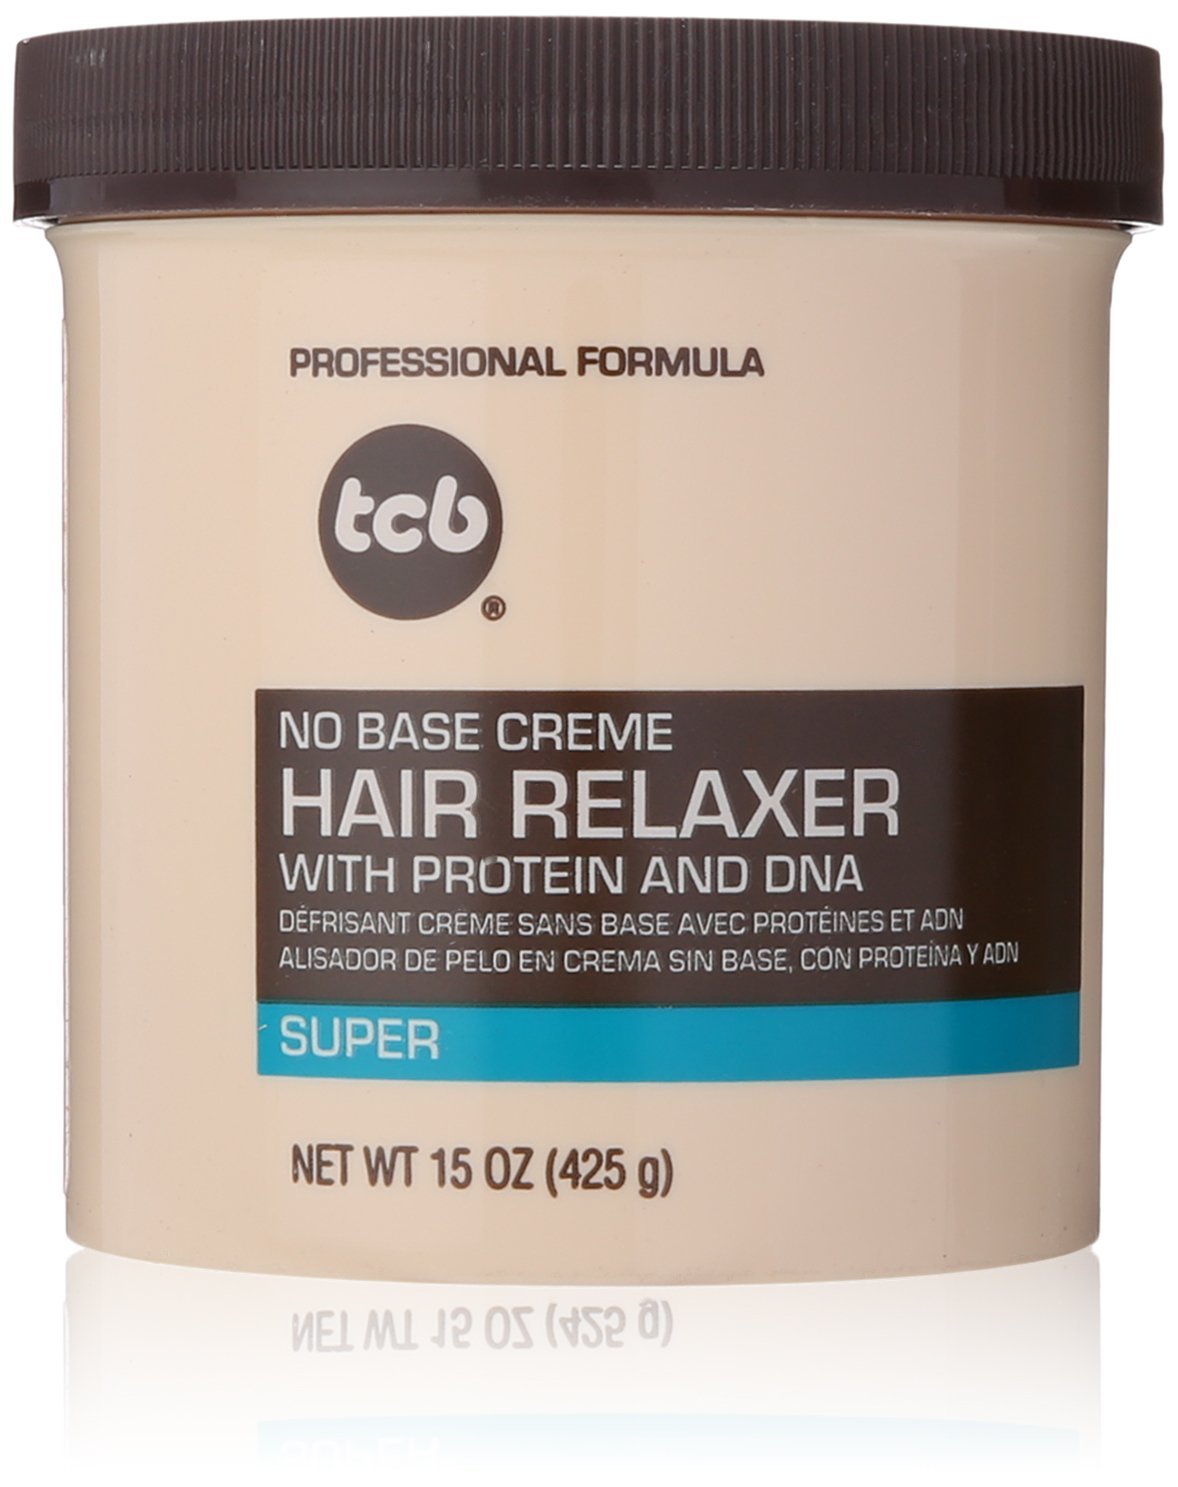 TCB- Super No Base Creme Hair Relaxer 15oz